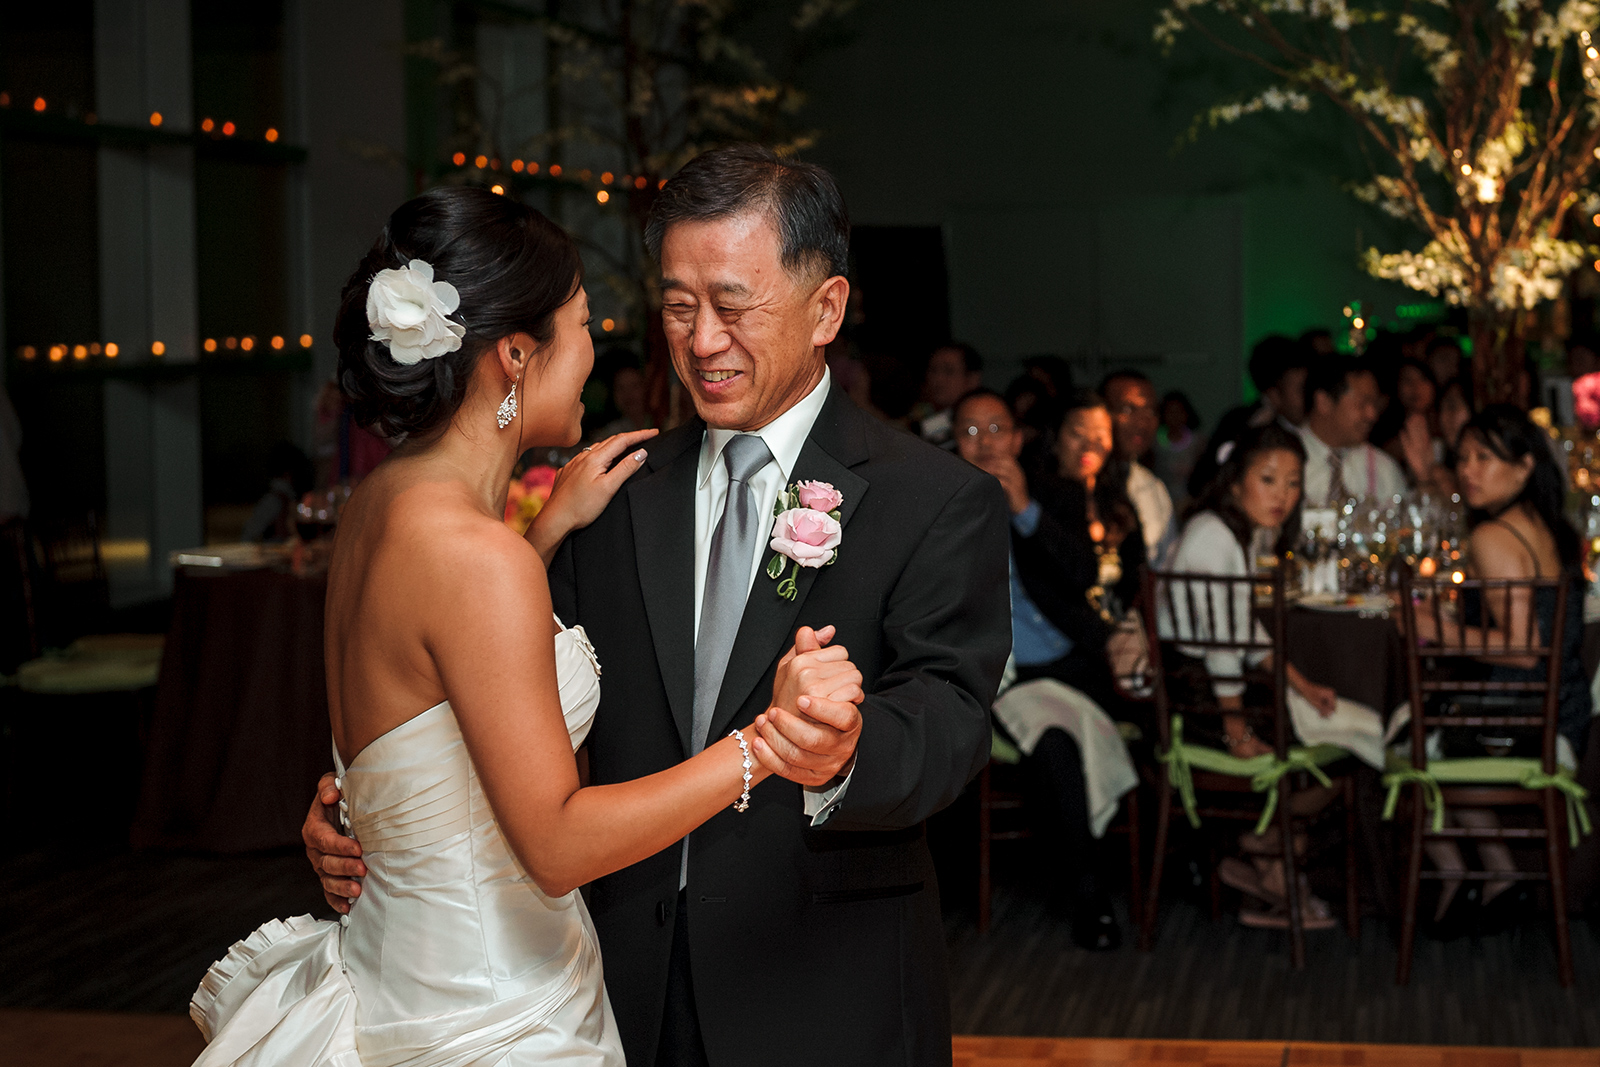 Stage 6 at Steiner Studios Wedding in Brooklyn, NY father daughter dance